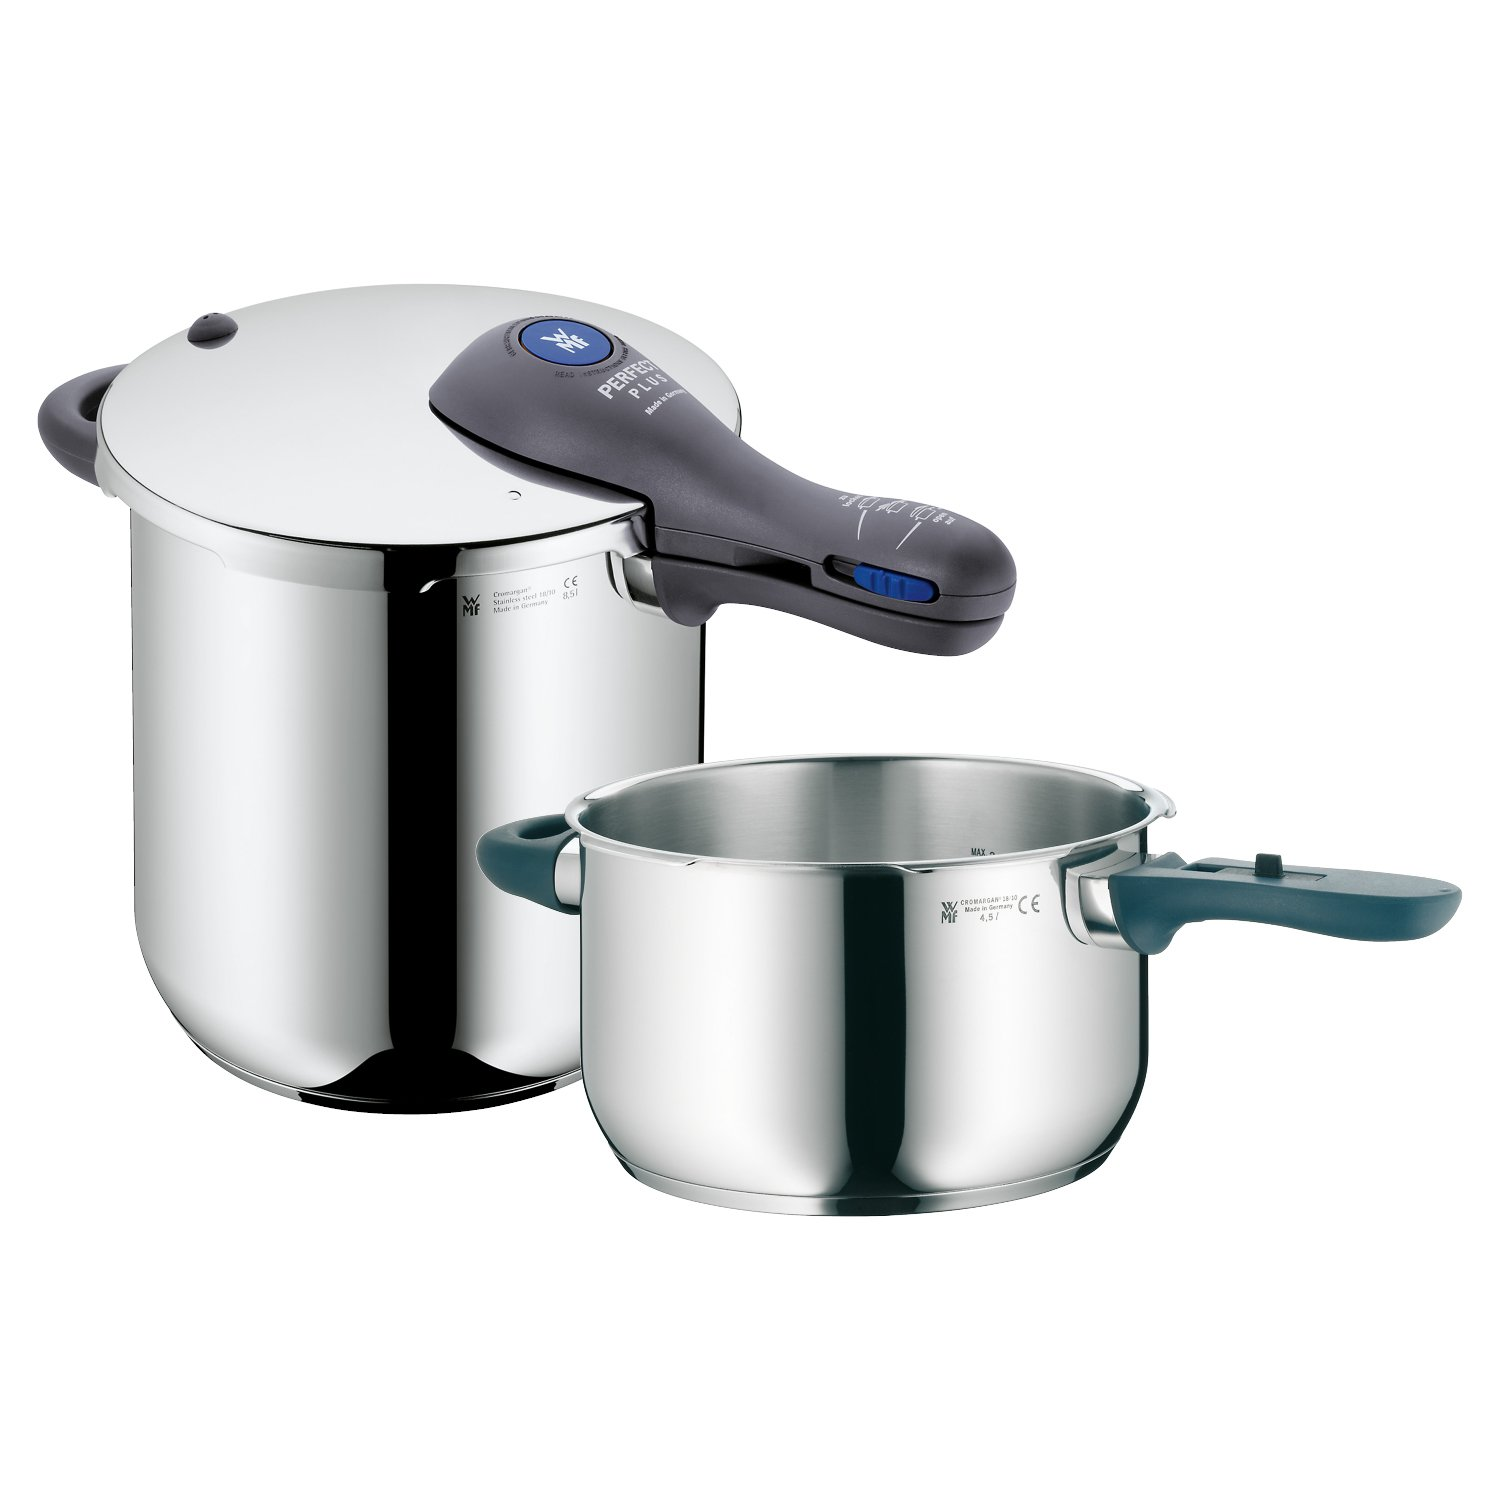 WMF Perfect Plus 8-1/2-Quart and 4-1/2-Quart Stainless Steel Pressure Cookers with Interchangeable Locking Lid by WMF B005EQK3IE